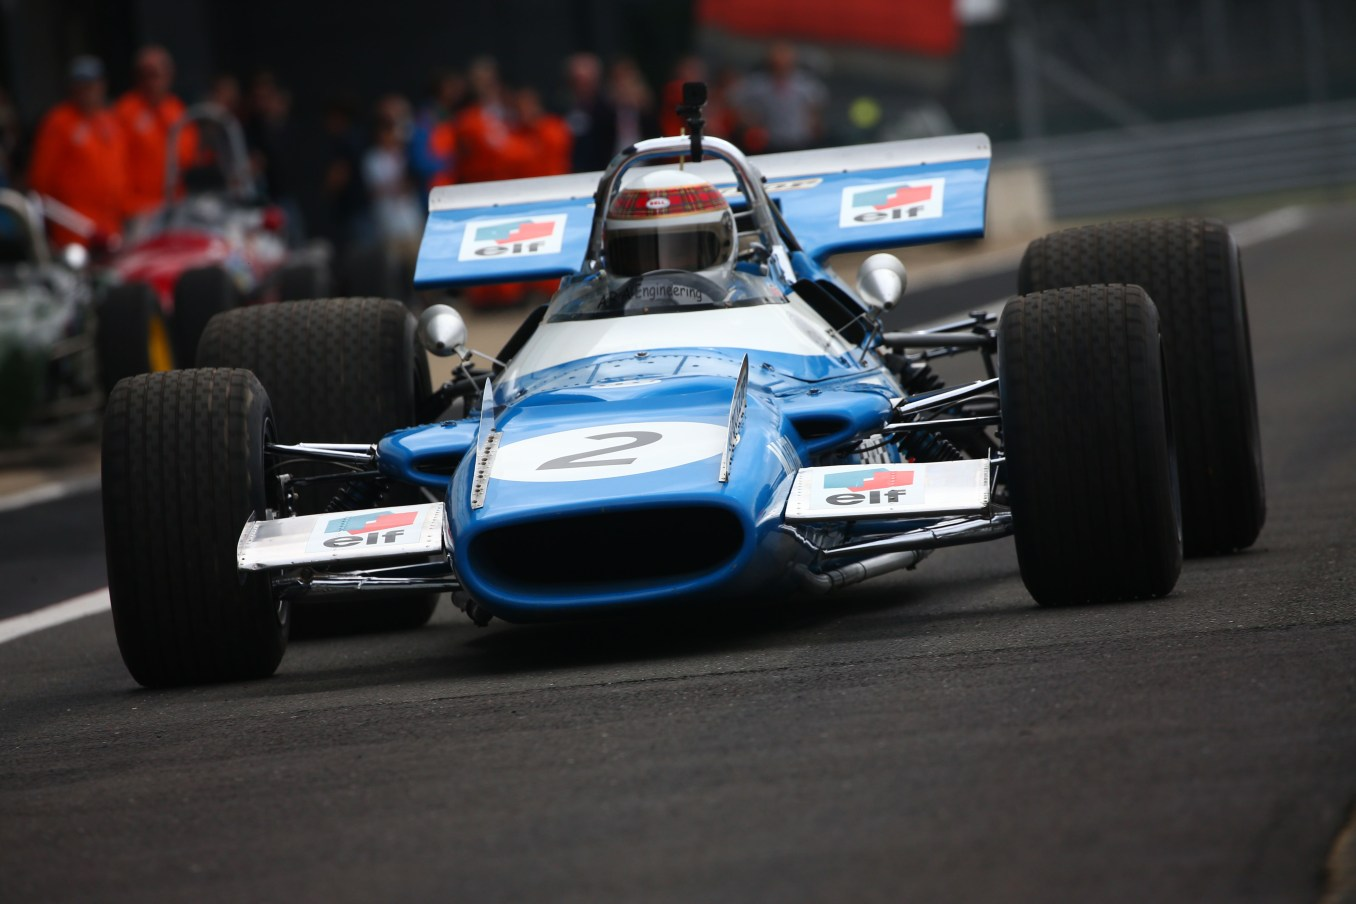 Sir Jackie Stewart celebrates 50 years since his first British Grand Prix win at the 2019 Silverstone Classic 5